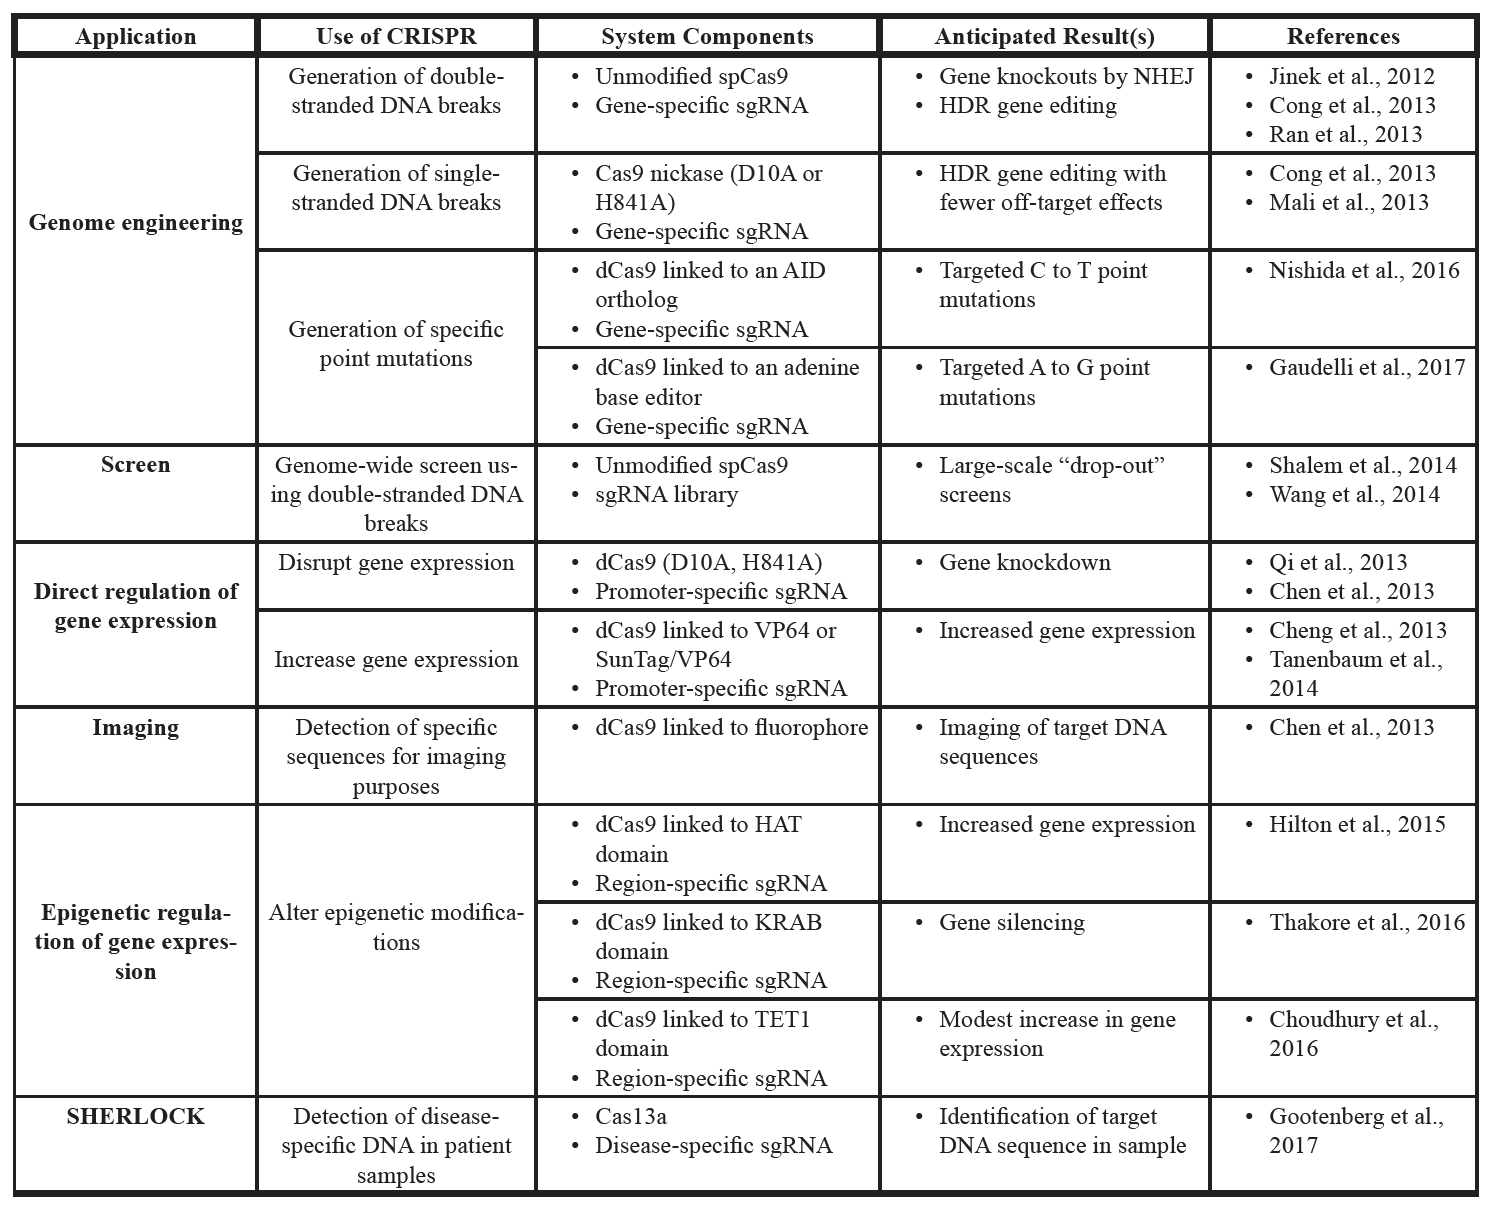 Table 1. Summary of discussed CRISPR-based systems.  CRISPR systems can be adapted for a variety of purposes. Many systems involve the catalytically dead (dCas9), which acts as a targeted DNA binding protein, to which many other effector domains can be added.